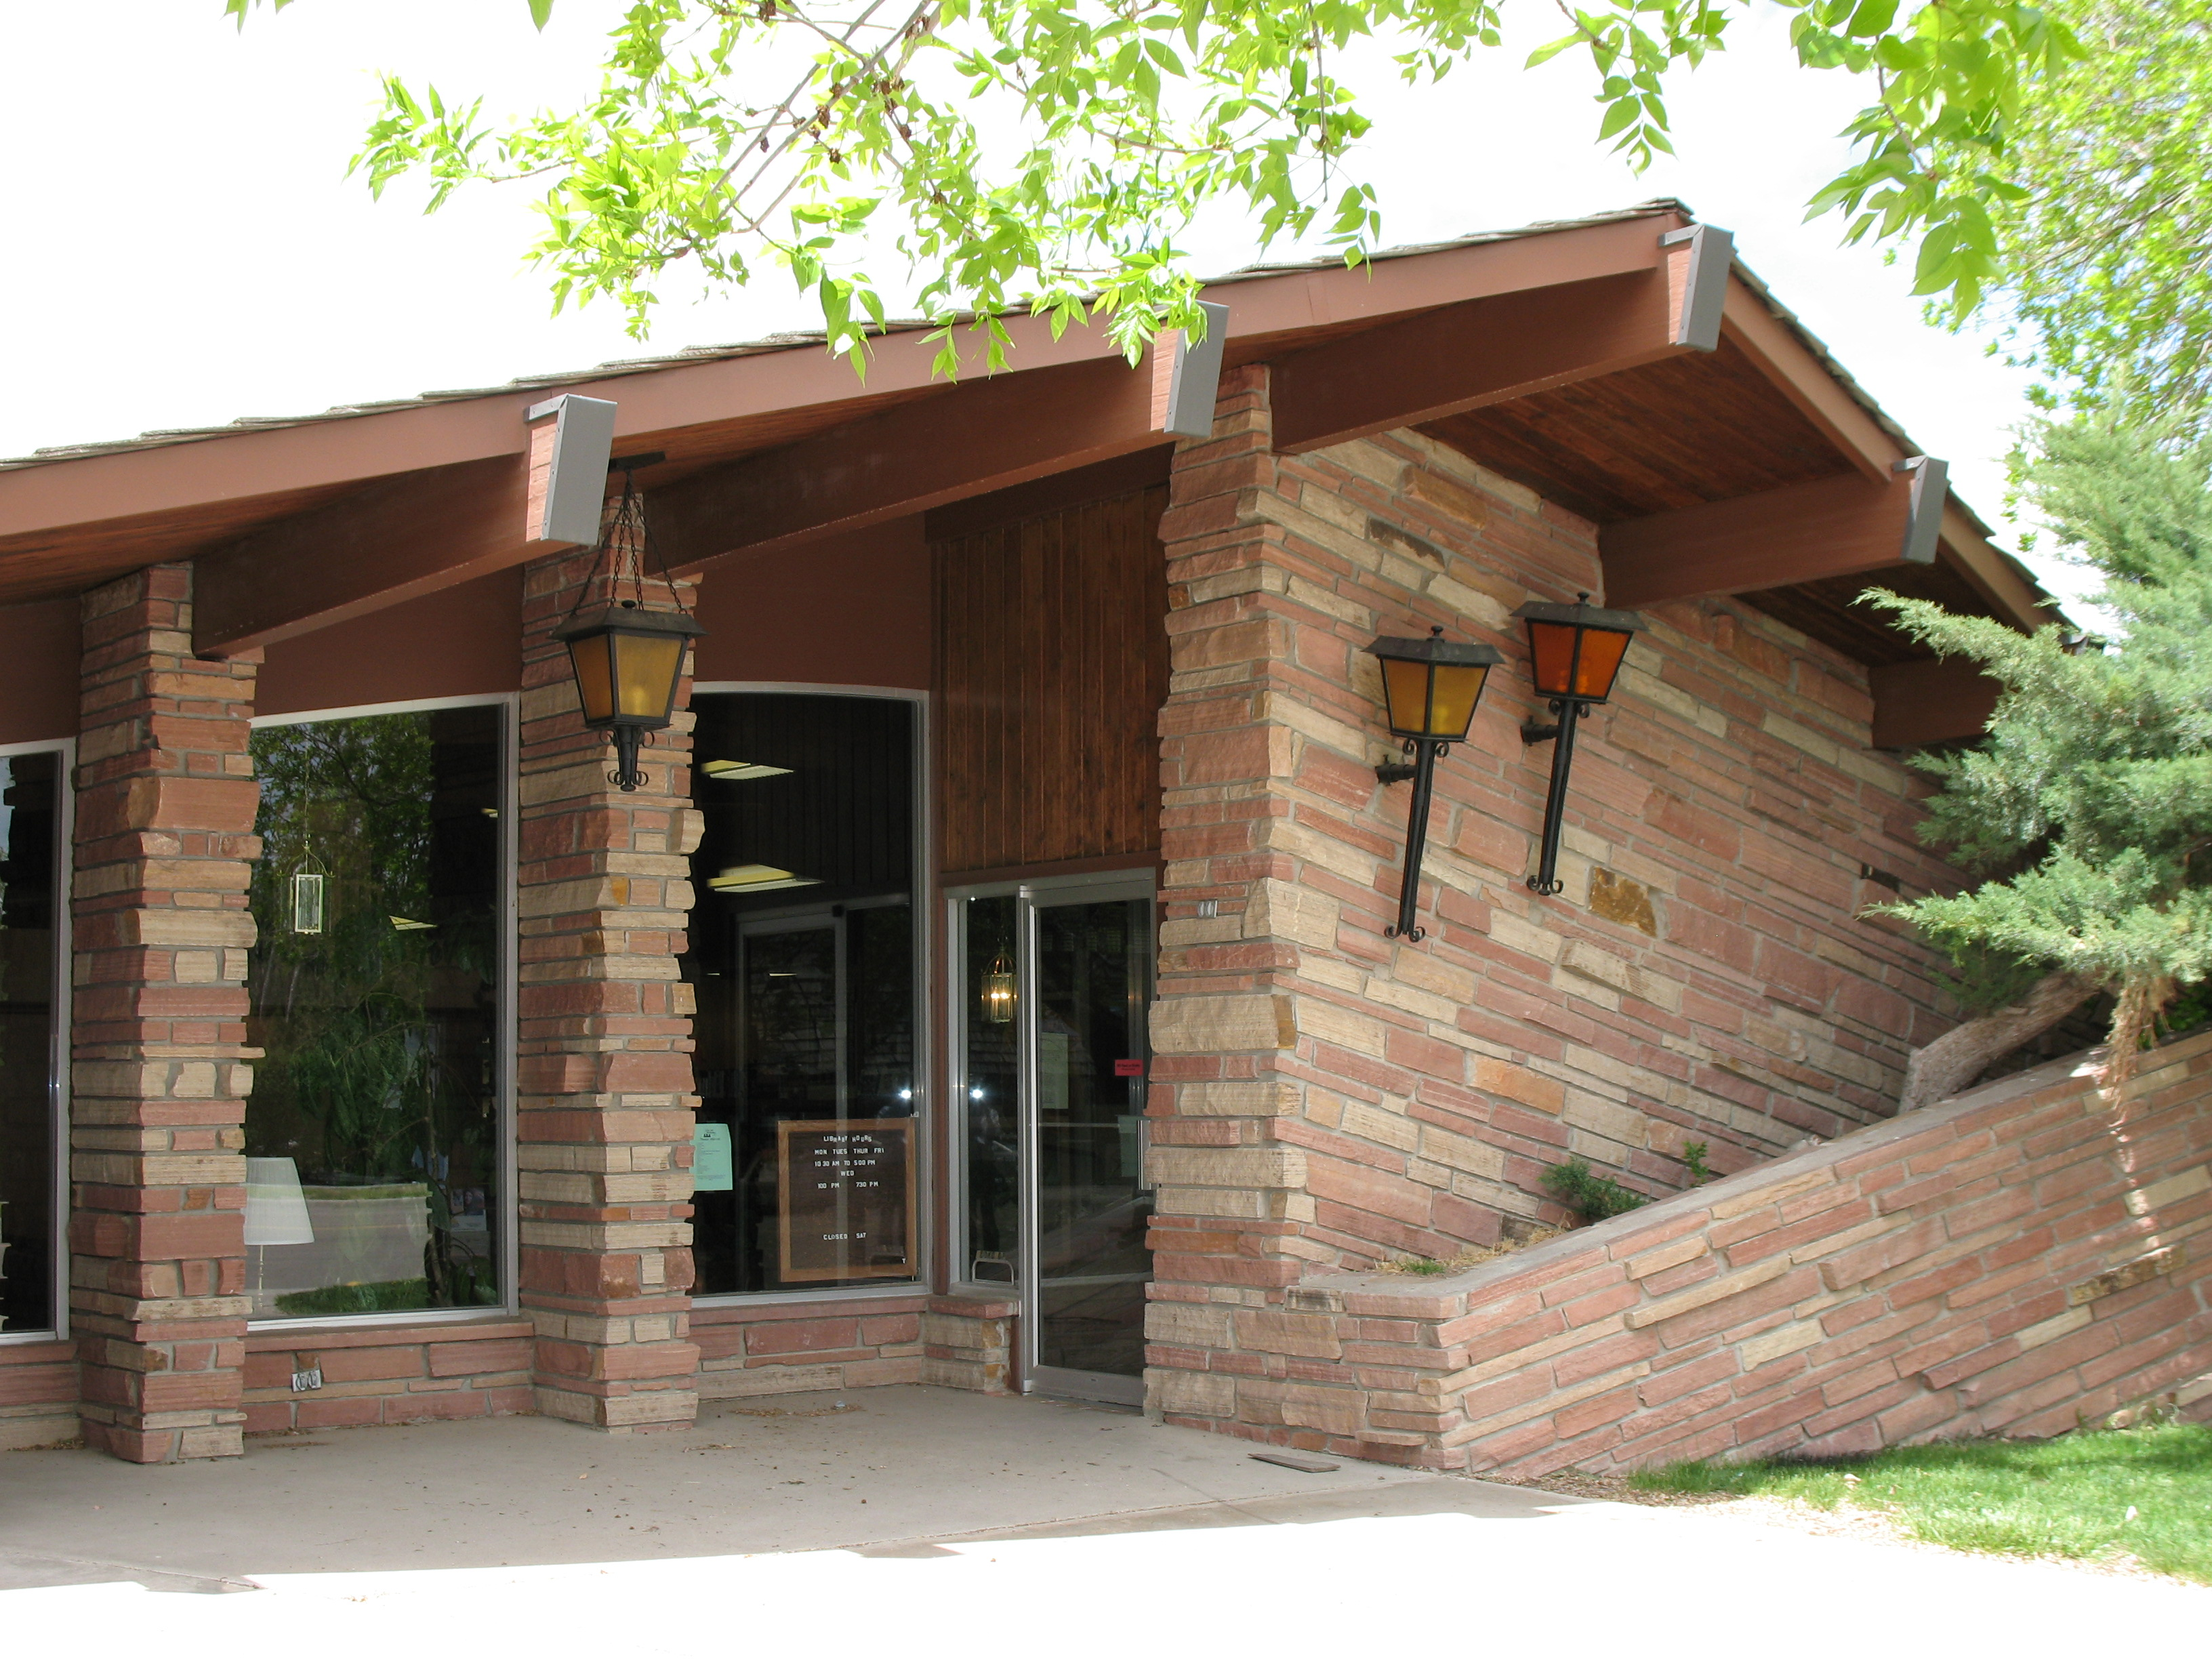 Greeley County Library – The heart of the community